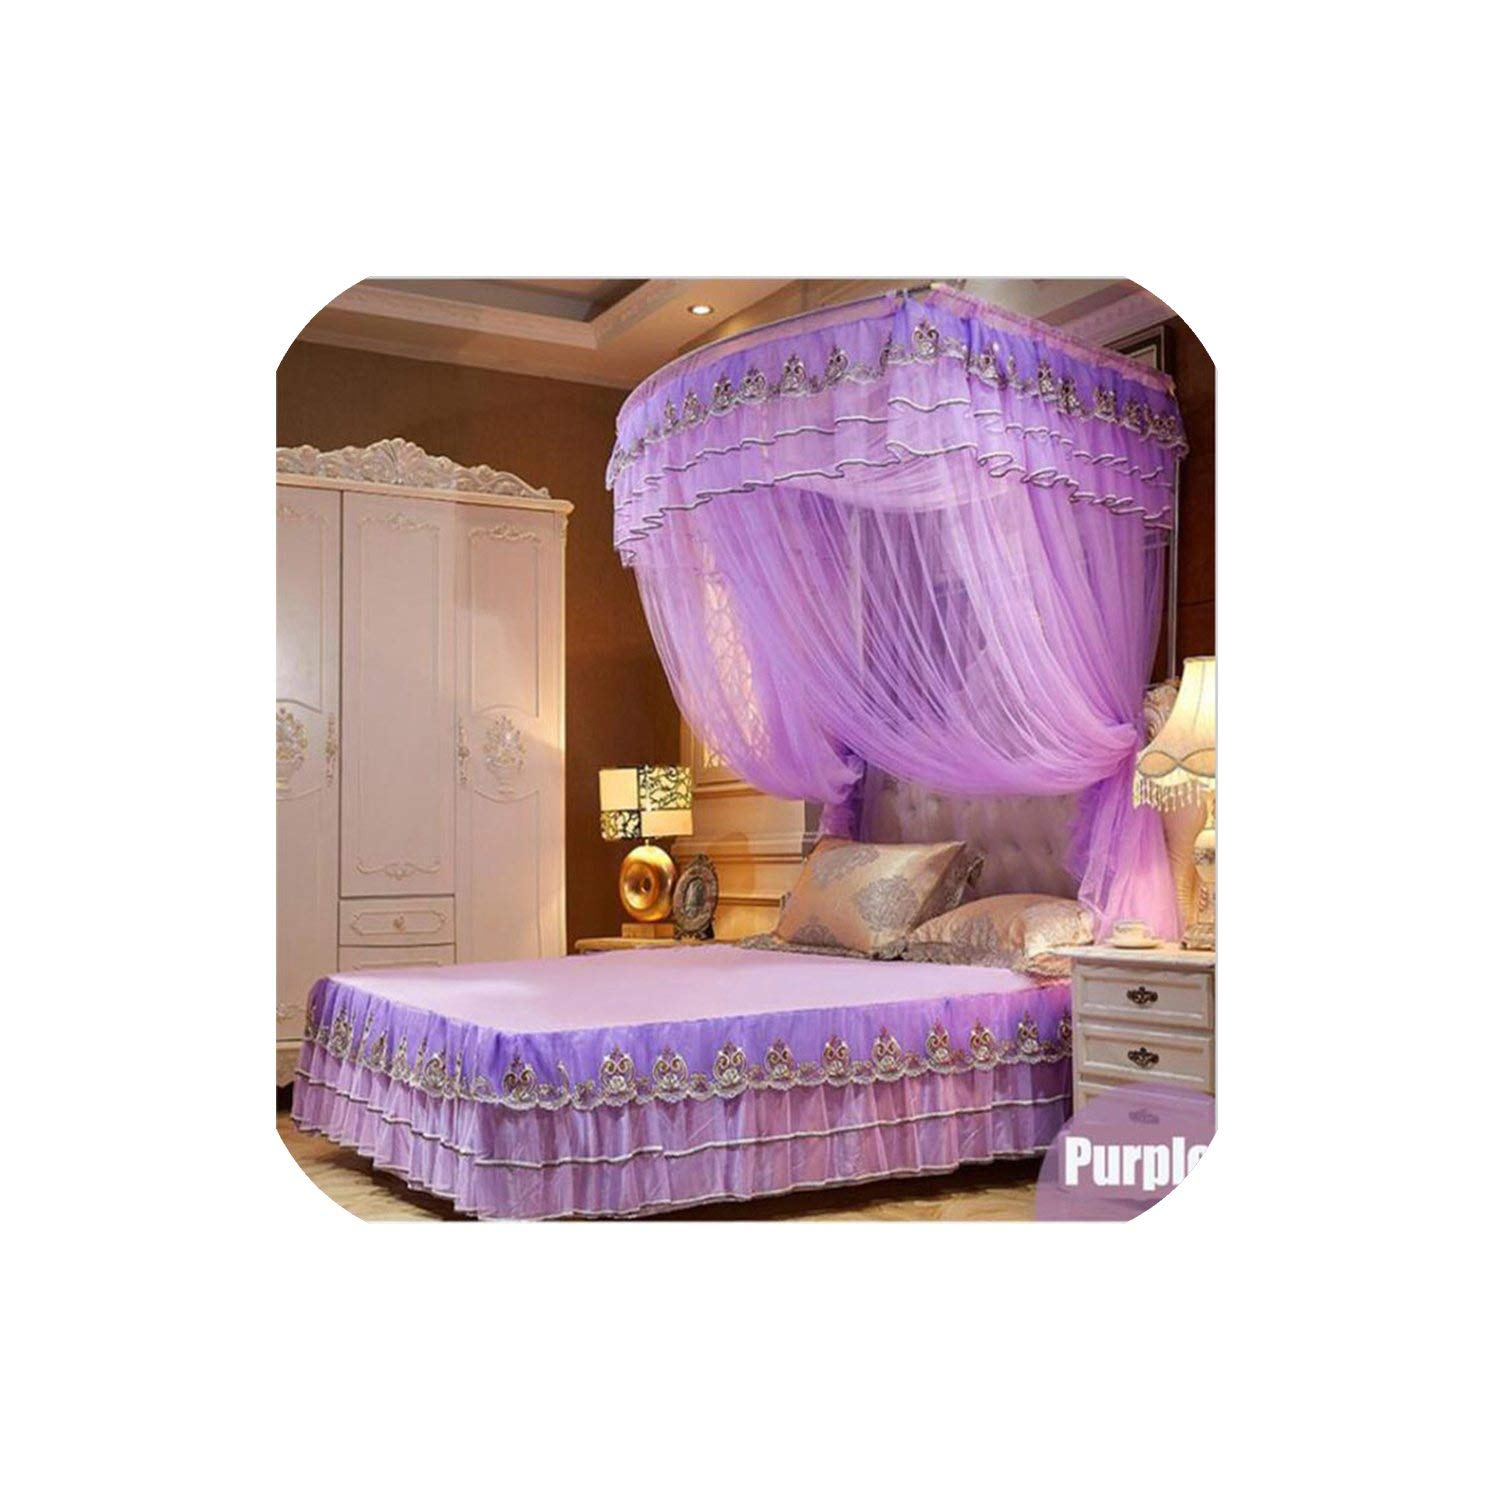 Fishing Rod Retractable Mosquito Net Multi Size Wedding Lace Mosquito Net 50D Encryption Soft Yarn Nice Bed Decor,Purple,1.5Mwx2Mlx2.1Mh